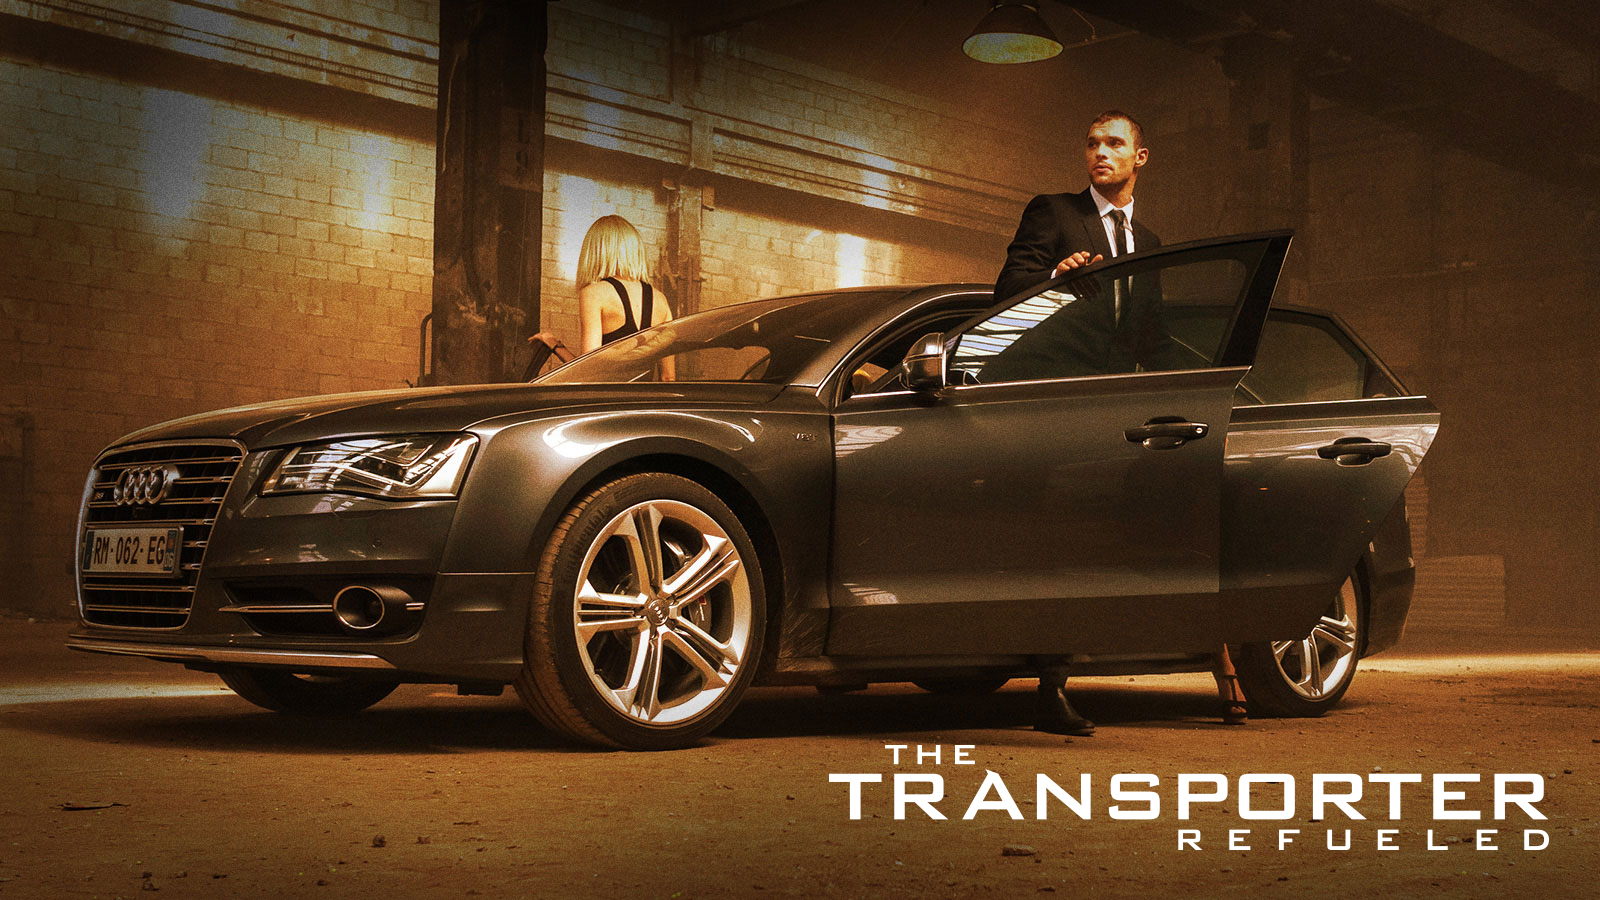 transporter_refueled_hd_wallpapers_02